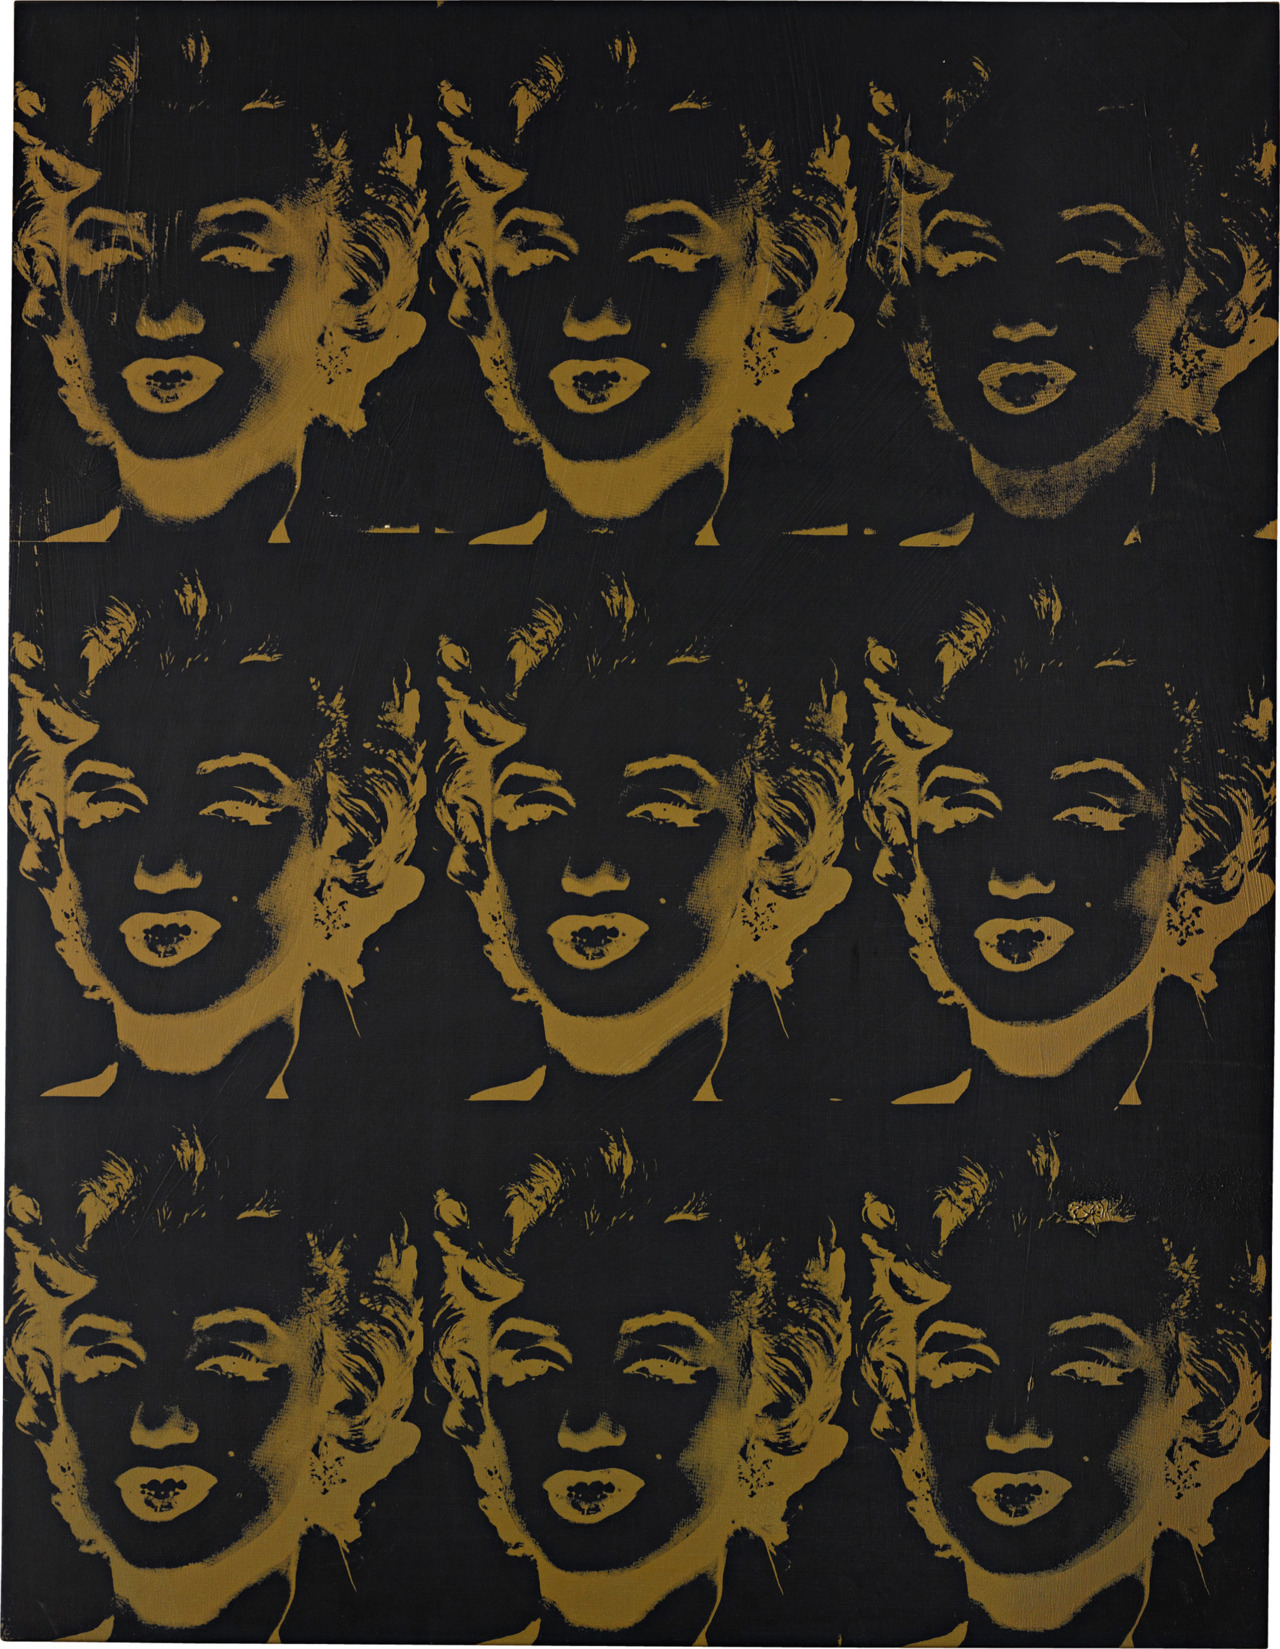 "phillipsdepury:  Andy Warhol's Nine Gold Marilyns (Reversal Series), 1980, sold for $7,922,500 at the Contemporary Art Part I sale, 7 November 2011, New York. Nine Gold Marilyns (Reversal Series), 1980, represents a major turn and a seminal zenith in Warhol's career. After he had spent his early years enshrining the photographic existence of Monroe and other celebrities, Warhol returned to the same subjects with a different technical approach and a nostalgic artistic mission. The Reversal Series began with an enormous collage of Warhol's previous artistic subjects in his Retrospective paintings of 1979. Instead of utilizing the developed image that he originally took from magazines and production stills, Warhol employed the use of the negative for each. The resulting images appear the way we might see them when we quickly shut our eyes: saturation fills the space of the pictures' shadows, and darkness becomes light. Both the frame and the ground of the image, once bright with the photographer's original lighting, become their opposite. Warhol followed this singular collage in the coming years with single or multiple ""reversals"" of each image. Many of these paintings possess a canvas of animated coloring, with the silkscreen laid over top.But Nine Gold Marilyns (Reversal Series), 1980, entertains no such intrusions of the 1980s' indulgences in overanimation. Instead, in its restrained and elegant gold, it draws upon a color that Warhol first utilized in the center of his soup cans. In its return to only a single color in order to illustrate a single unique image, the present lot is a pure demonstration of Warhol's original silkscreening technique."